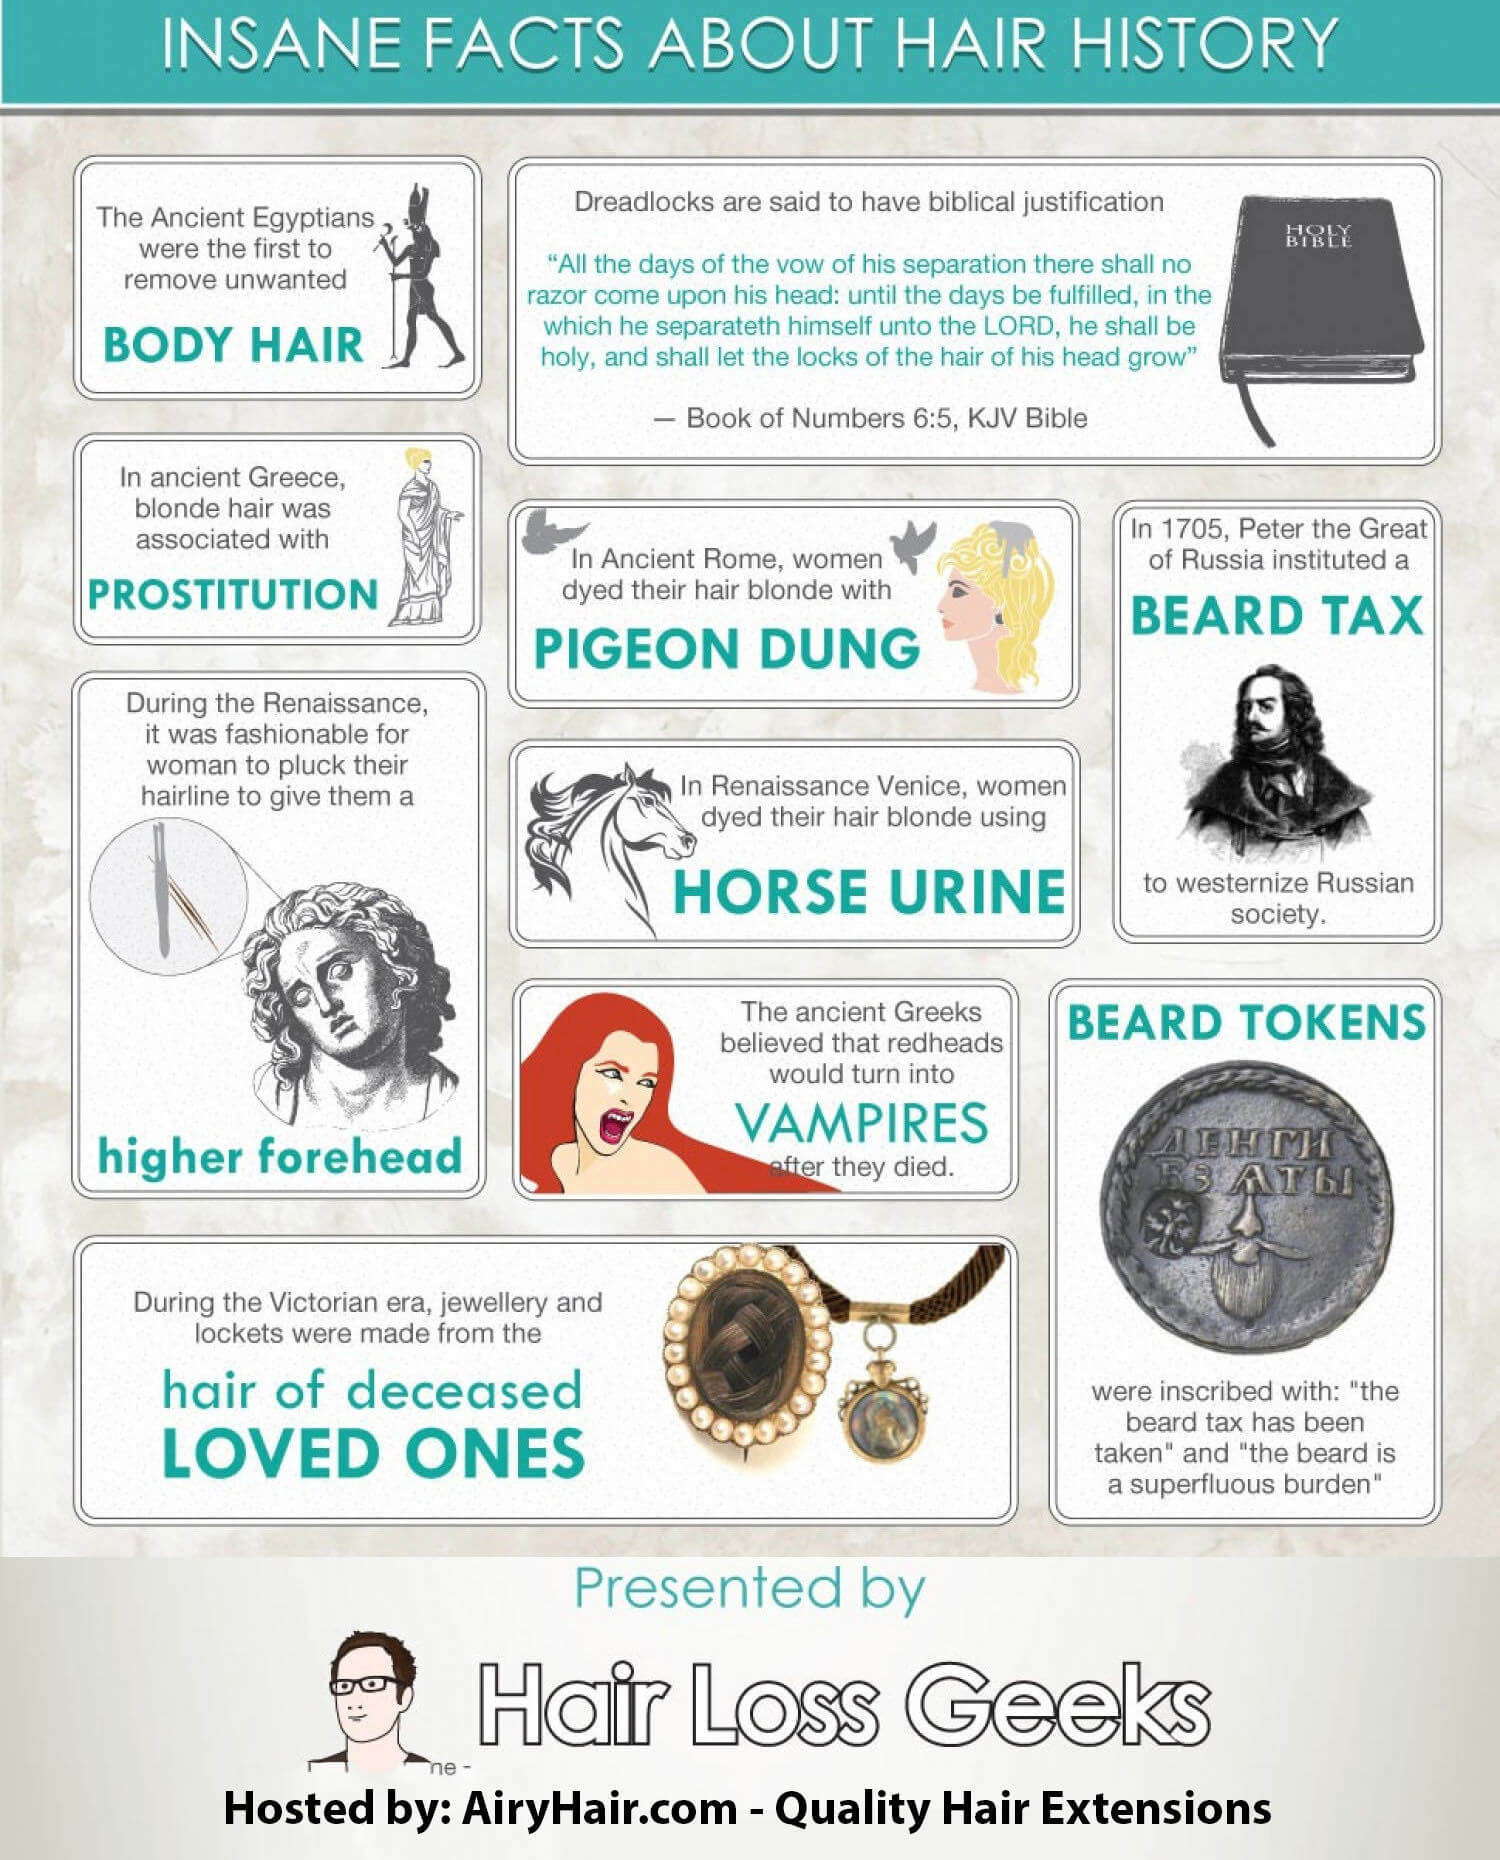 Top 10 Facts About Hair History